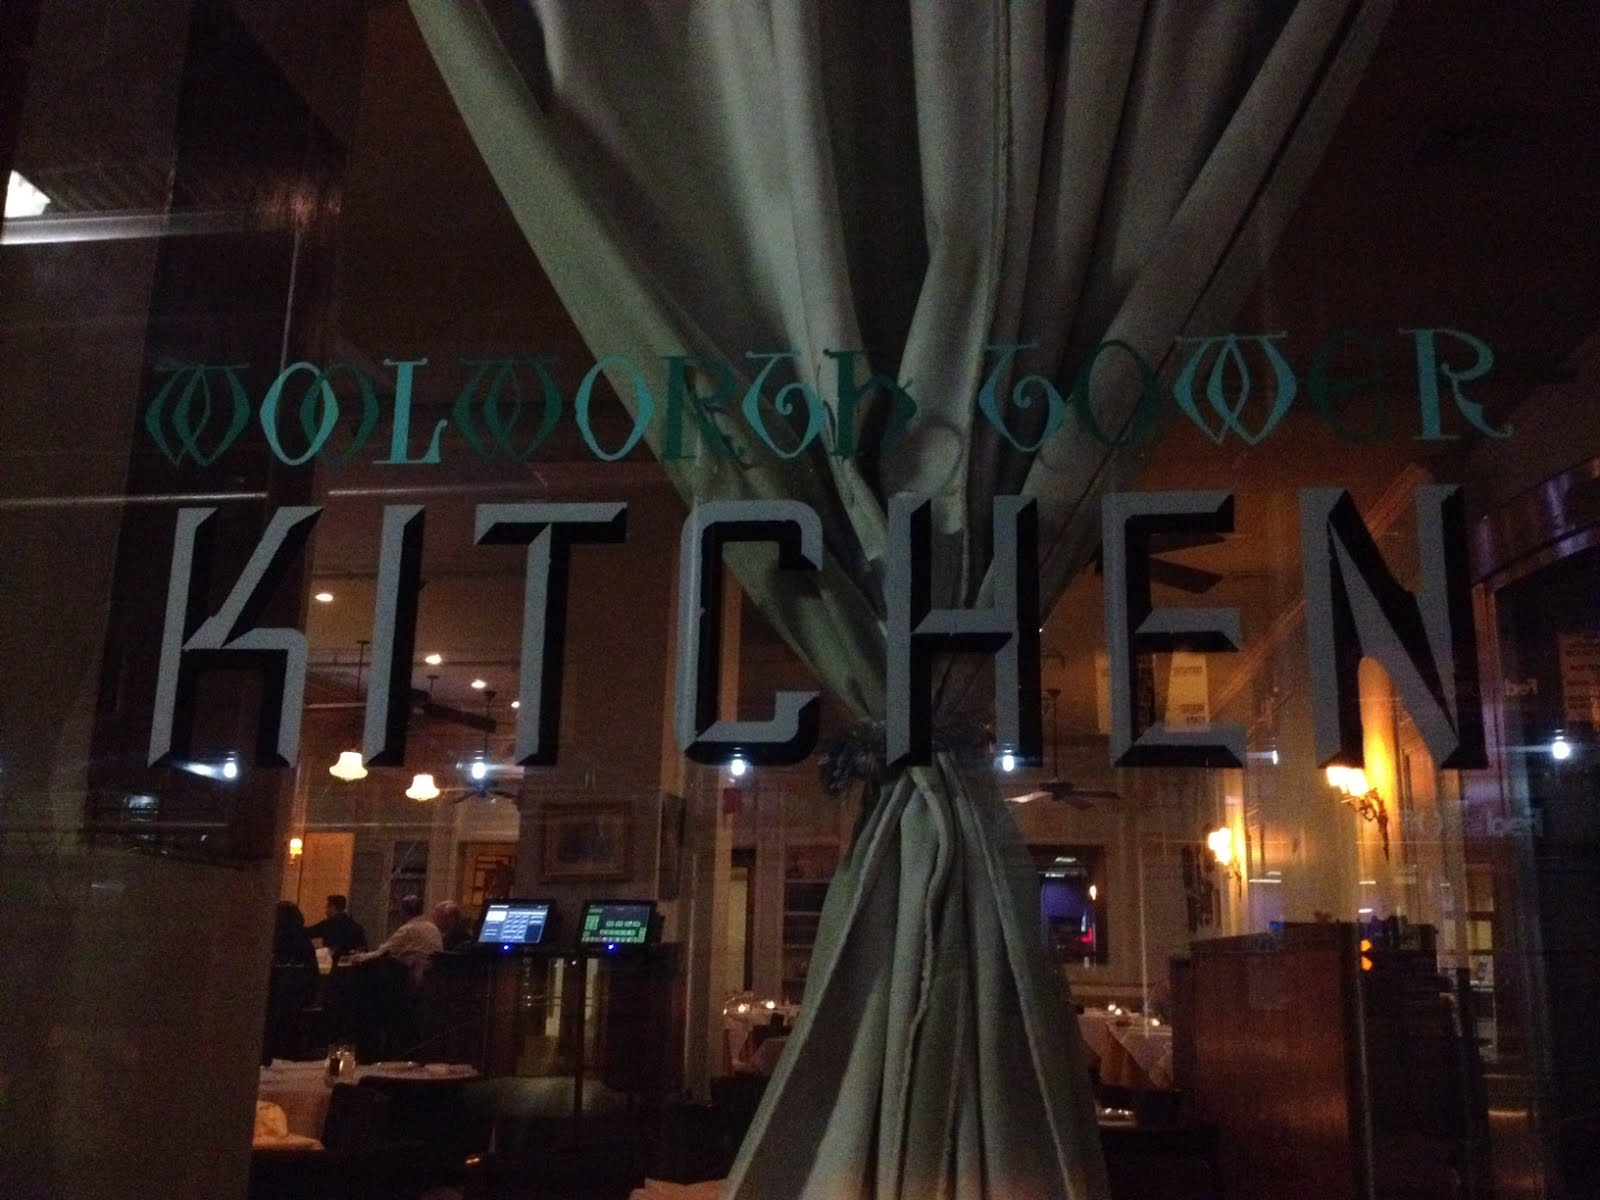 Stuff I Ate: Woolworth Tower Kitchen